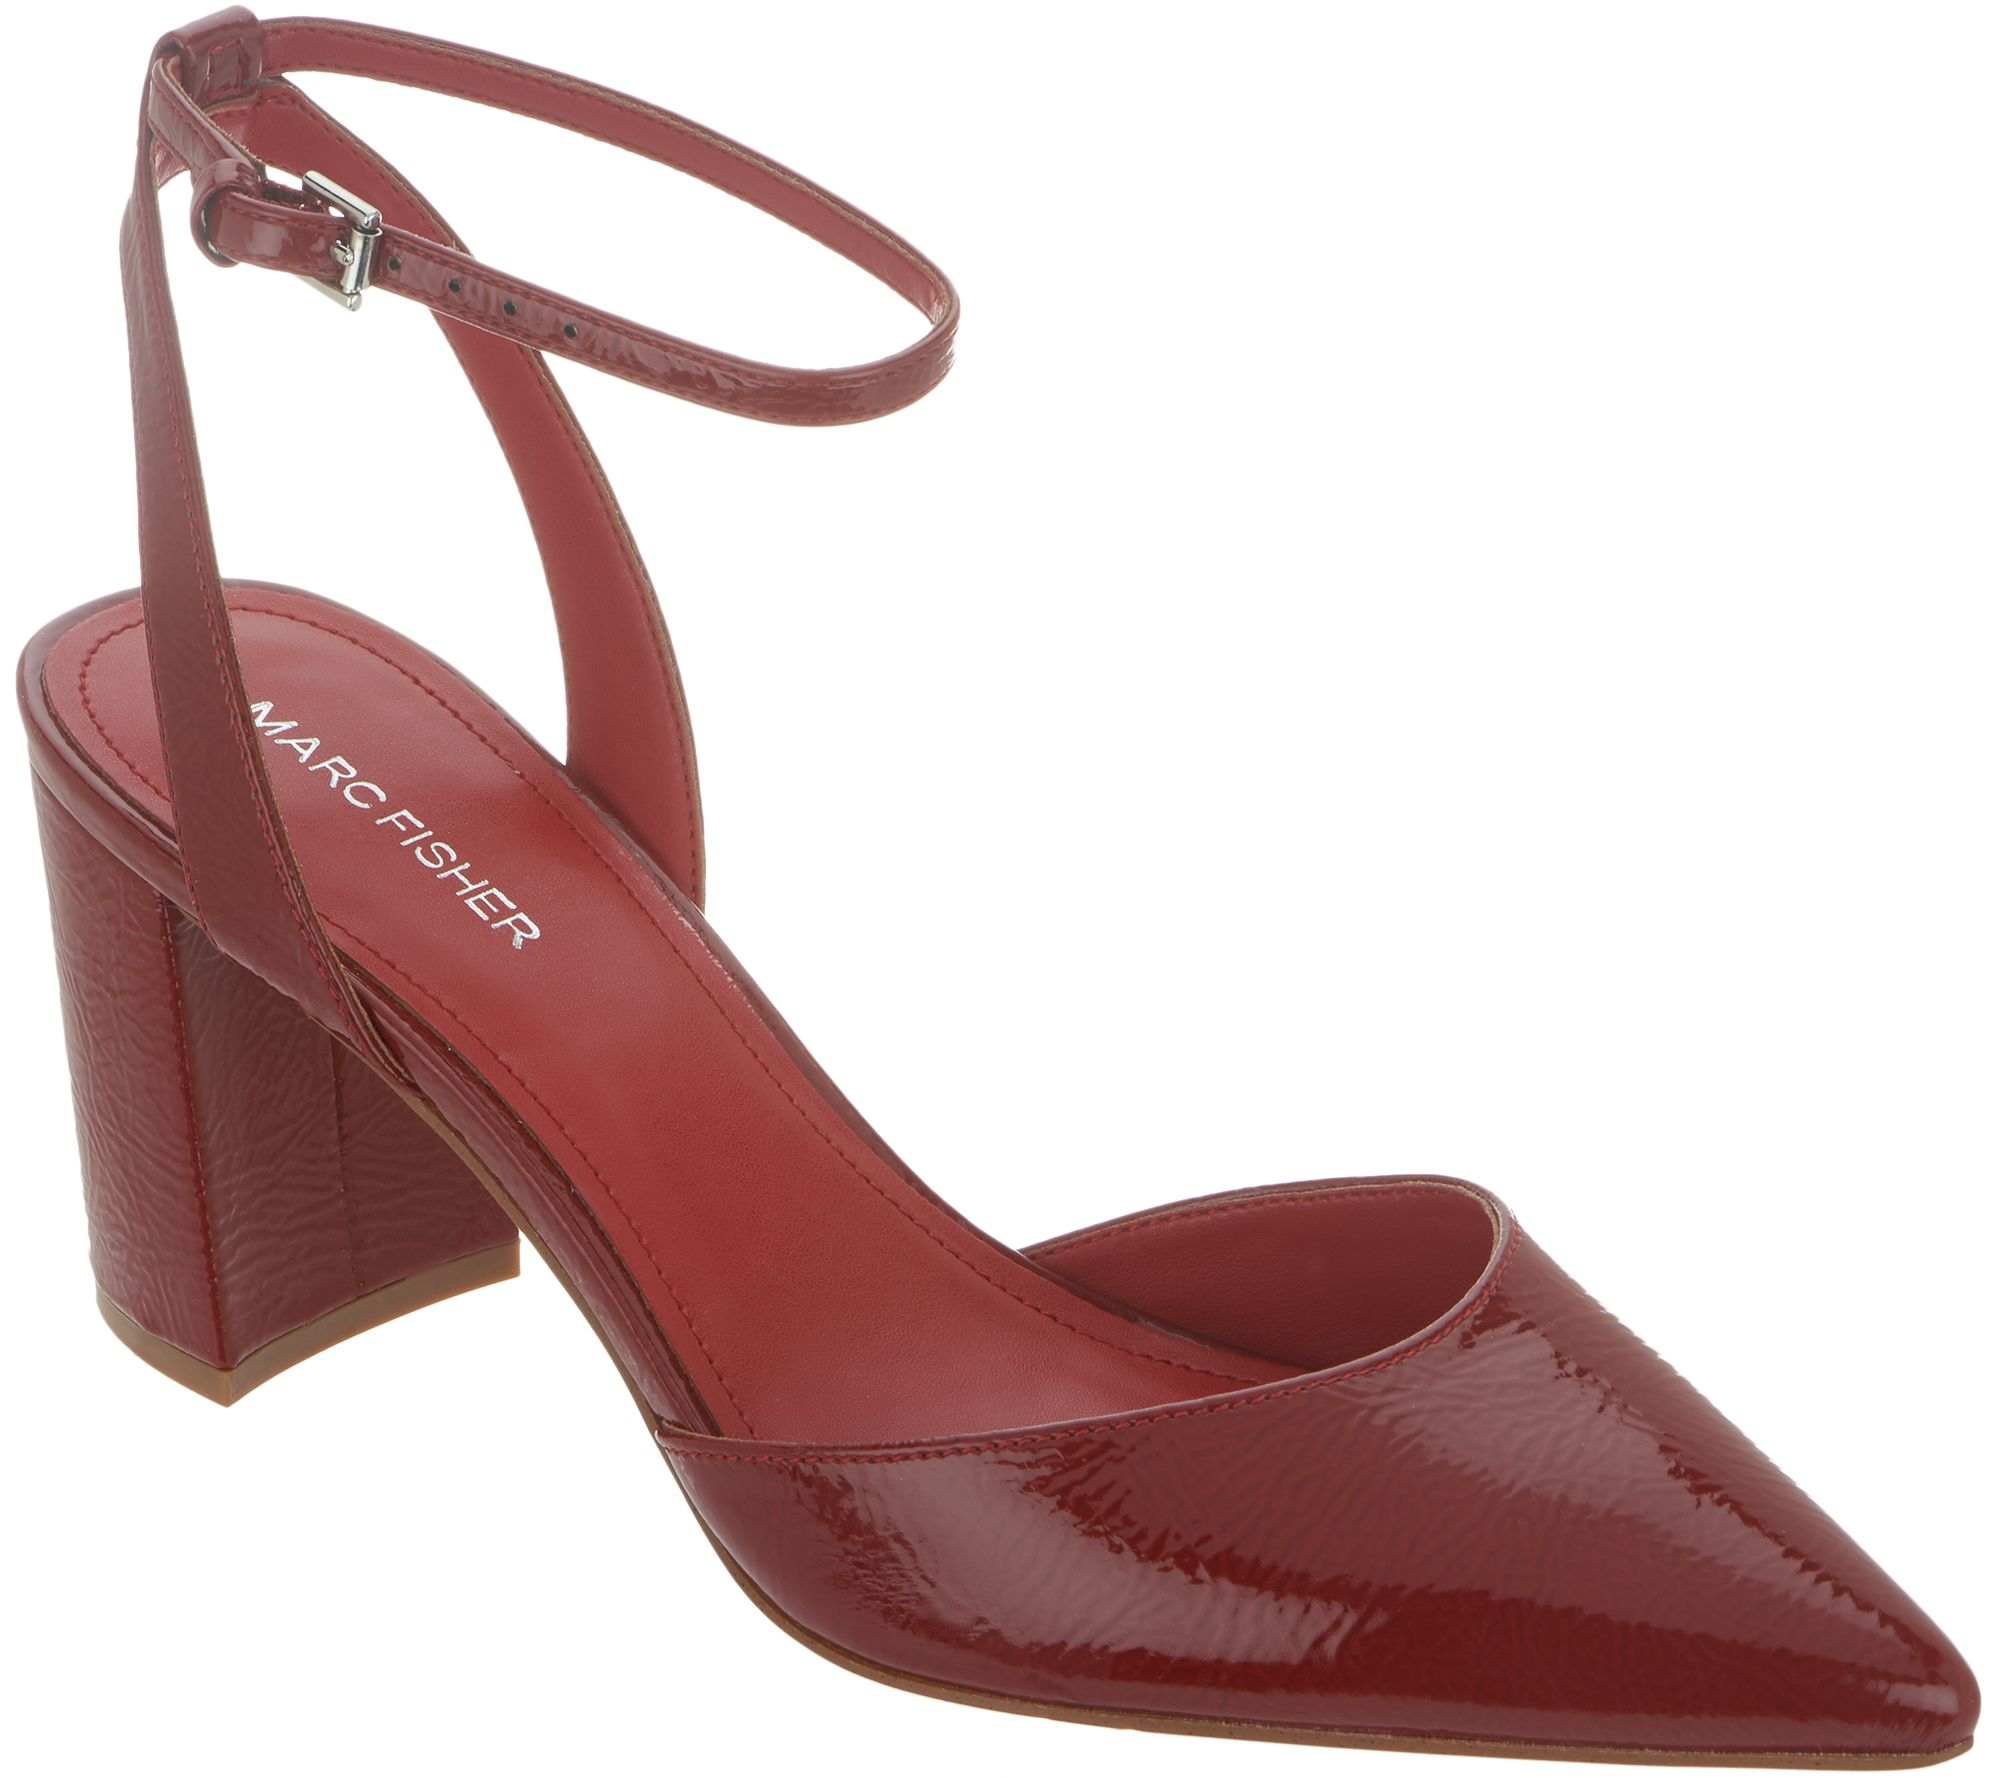 0175f3910aec Marc Fisher Pointed Toe Pumps with Ankle Straps - Cedrina - Page 1 — QVC.com